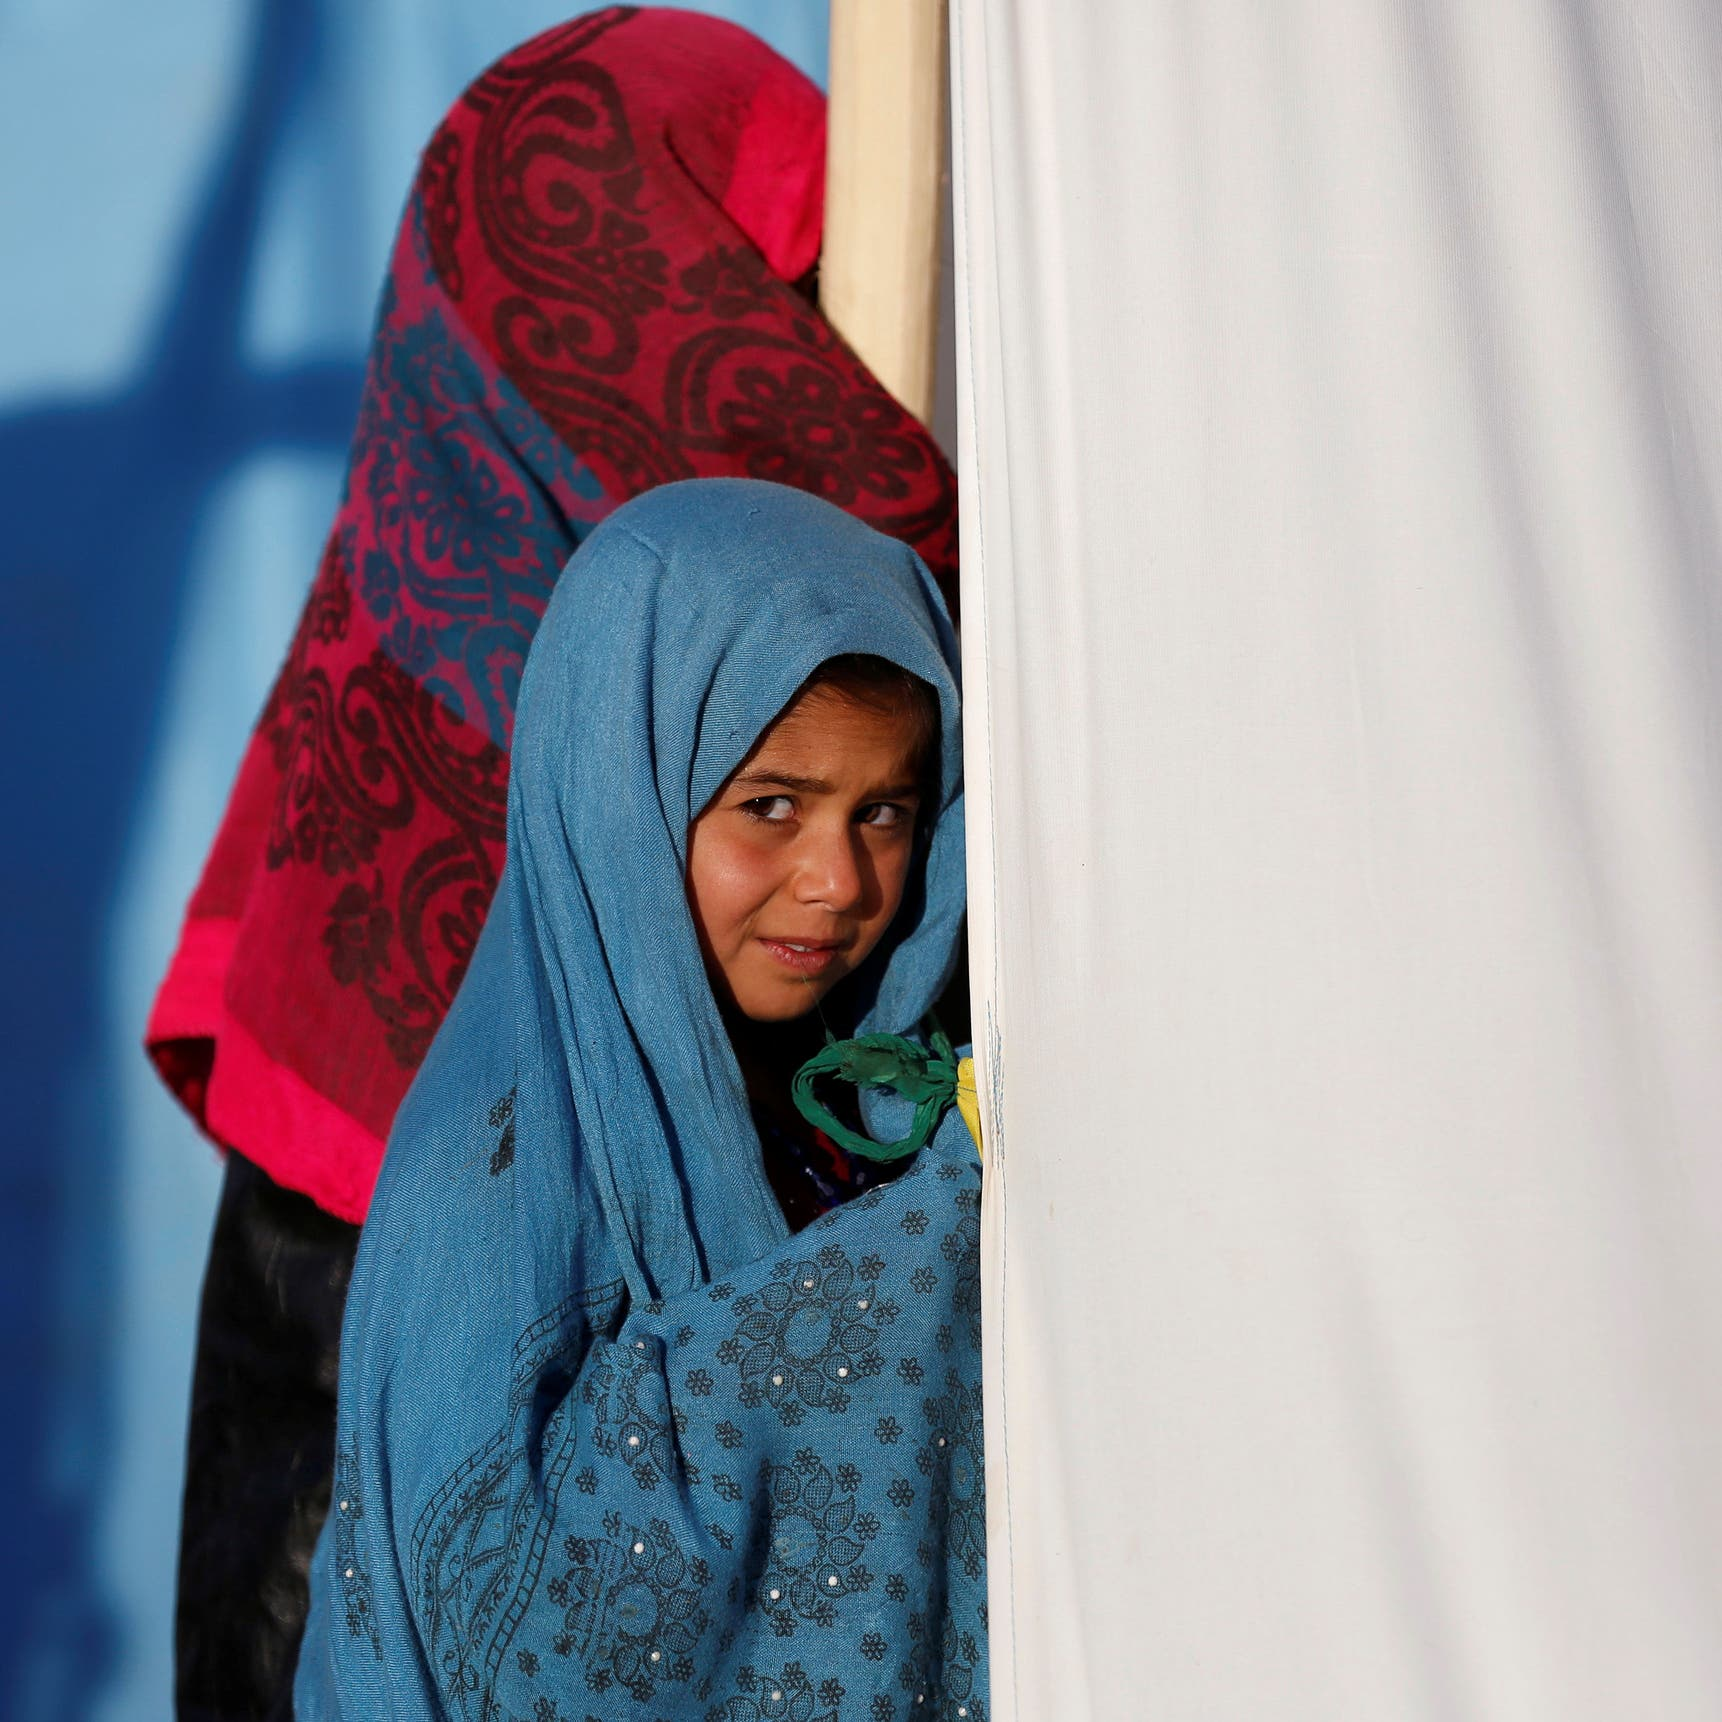 EU, US, others say 'deeply worried' about Afghanistan's women under Taliban control